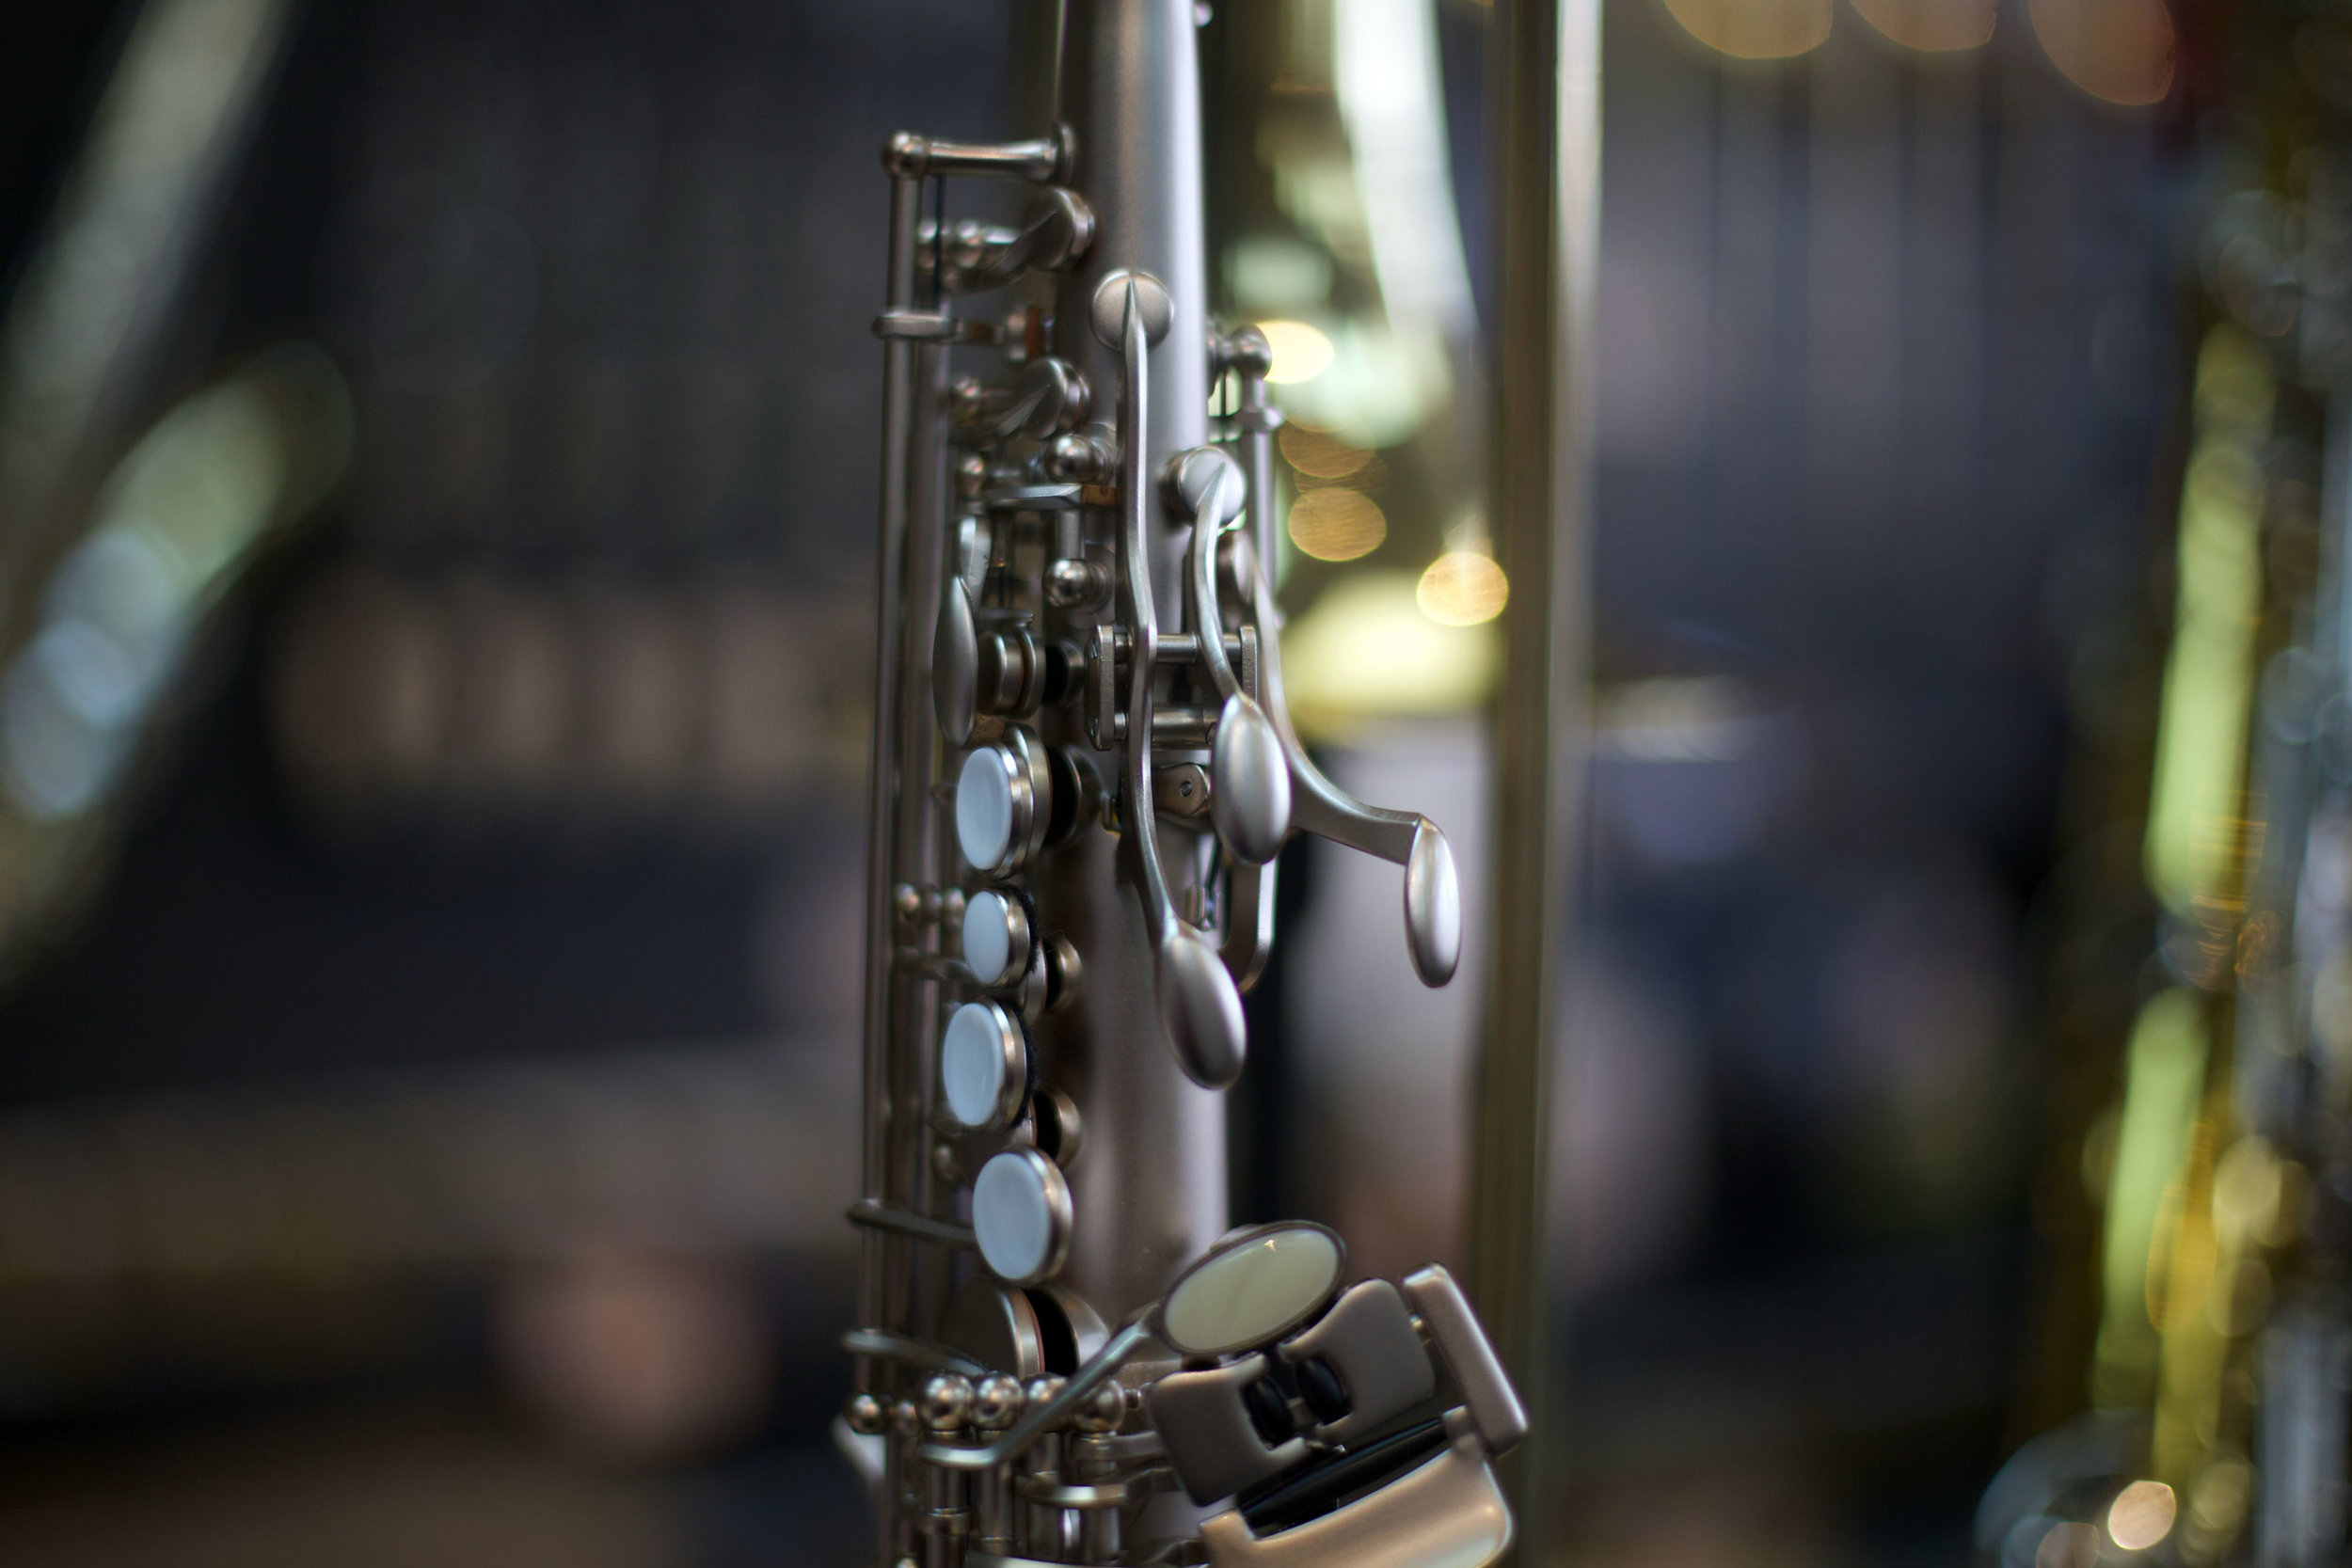 Local and trusted for over 40 years. - Under our student instrument lease plan, your student receives a name brand instrument in perfect playing condition for the entire school year. No monthly payments, no obligations, no buy dates. You will also receive 100% of the first year lease fee as a credit towards a minimum instrument purchase.Protect your lease instrument for the entire school year for only $20.00. This covers accidental damage, fire, and theft. In the case of fire or theft, the lease customer is responsible for filing the proper police or fire department report within 72 hours of the incident and providing us a copy with any claim.We will provide all repair work on the instrument required to keep it in good playing condition for the length of the lease agreement. Repair that exceeds normal wear and tear is billed at our regular of repair shop rate. In the event Tigard Music considers the instrument to be damaged beyond repair, the replacement value indicated by the agreement will be required.Ready to get started? Reserve your lease instrument below, or stop into the store today!